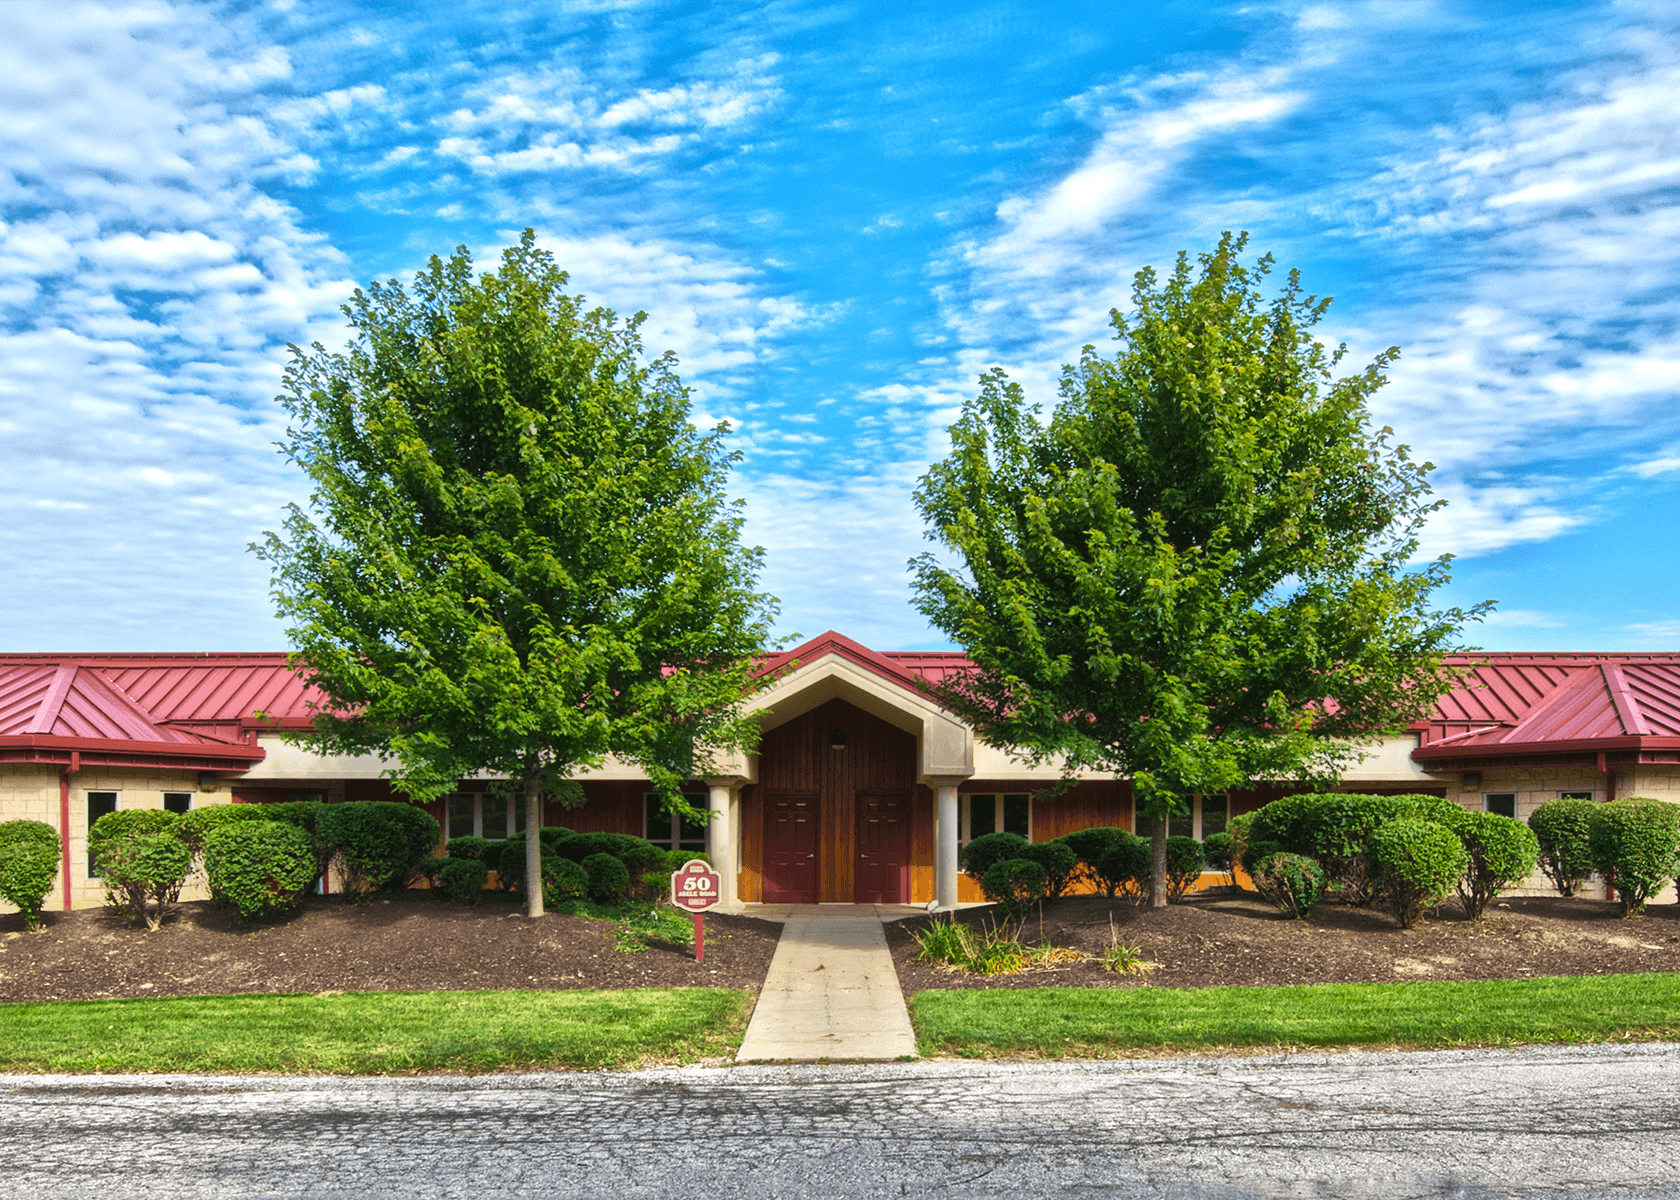 Exterior of a building at Abele Business Park with trees and shrubbery